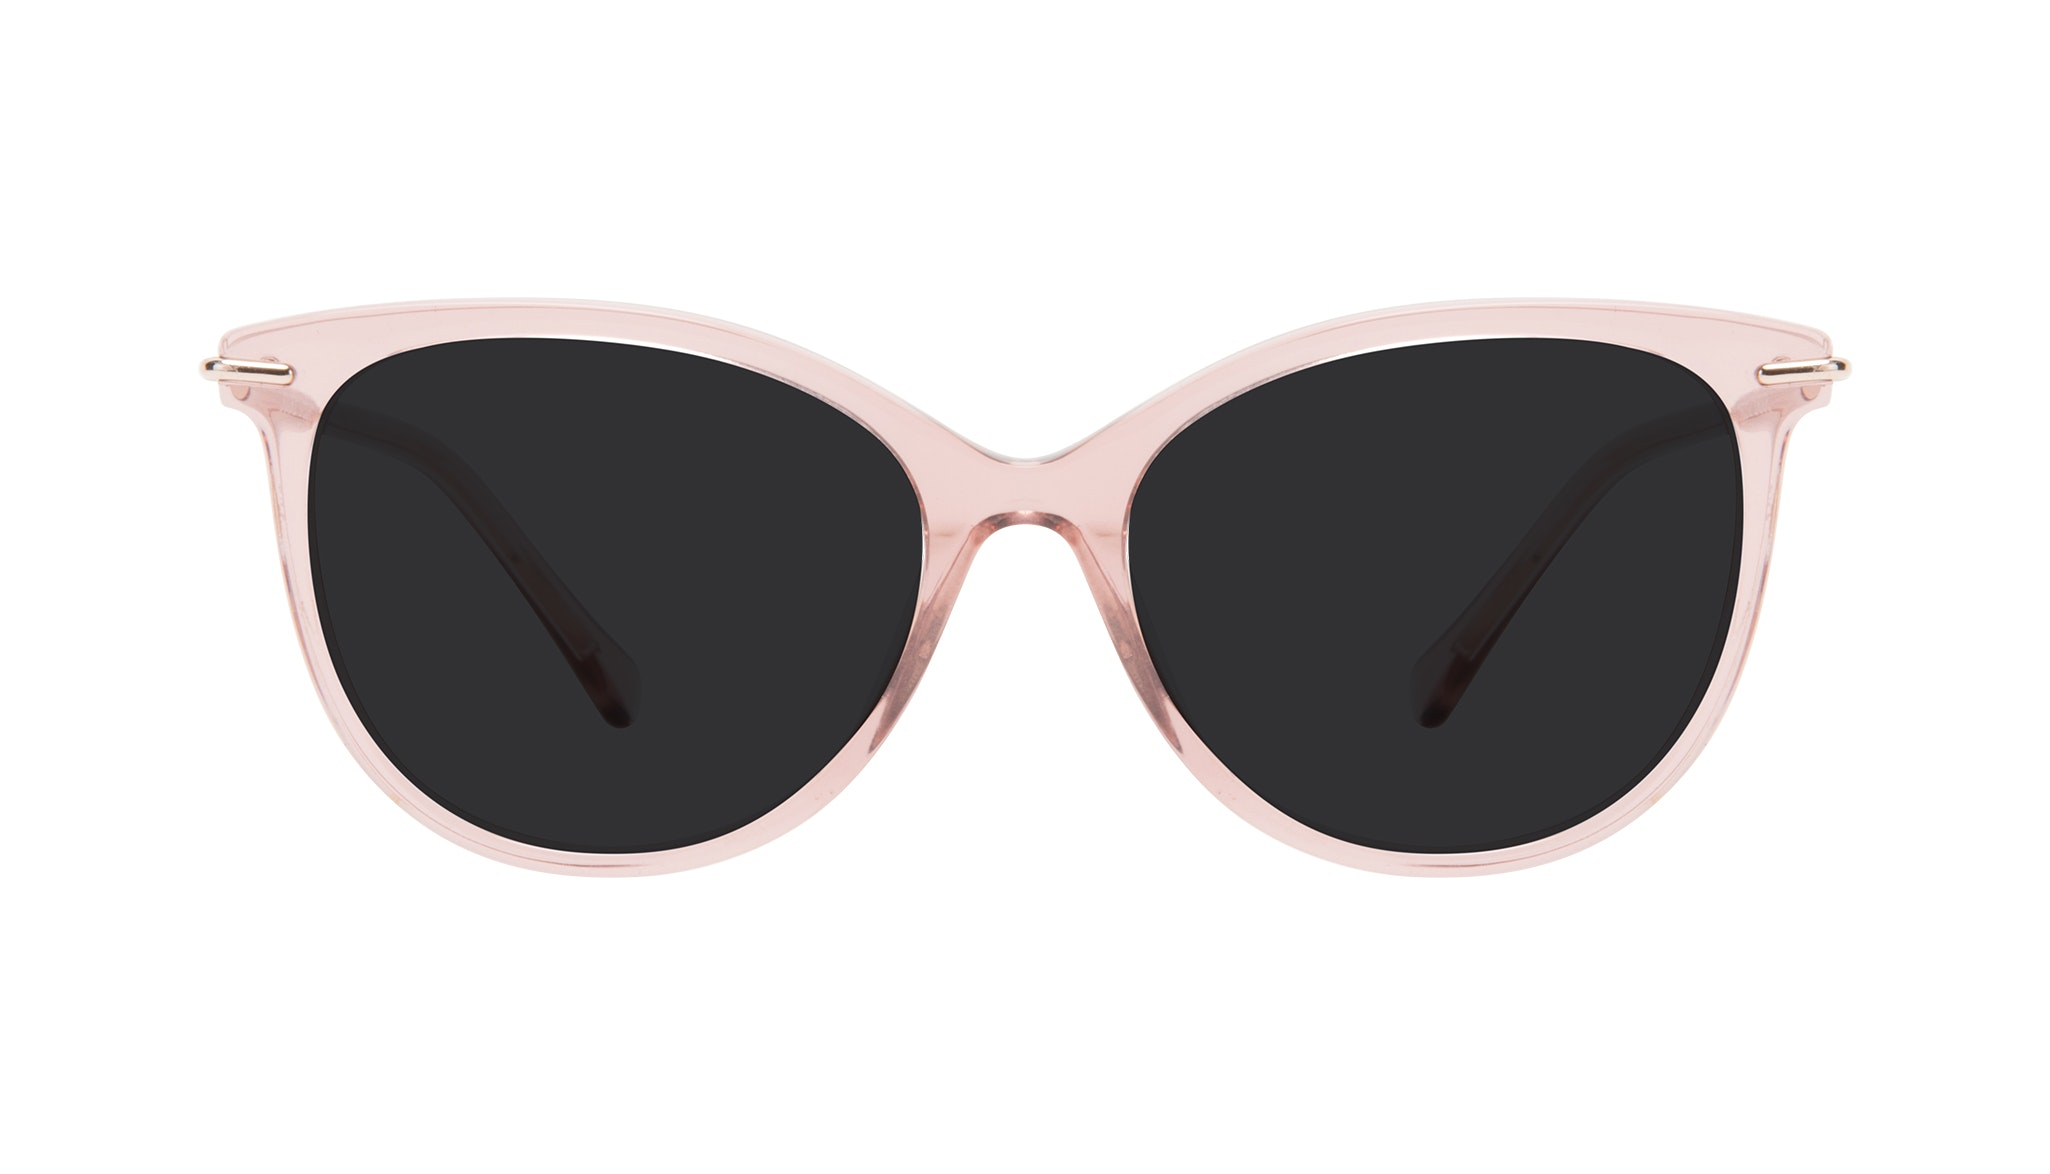 Affordable Fashion Glasses Round Sunglasses Women Sublime Rose Front